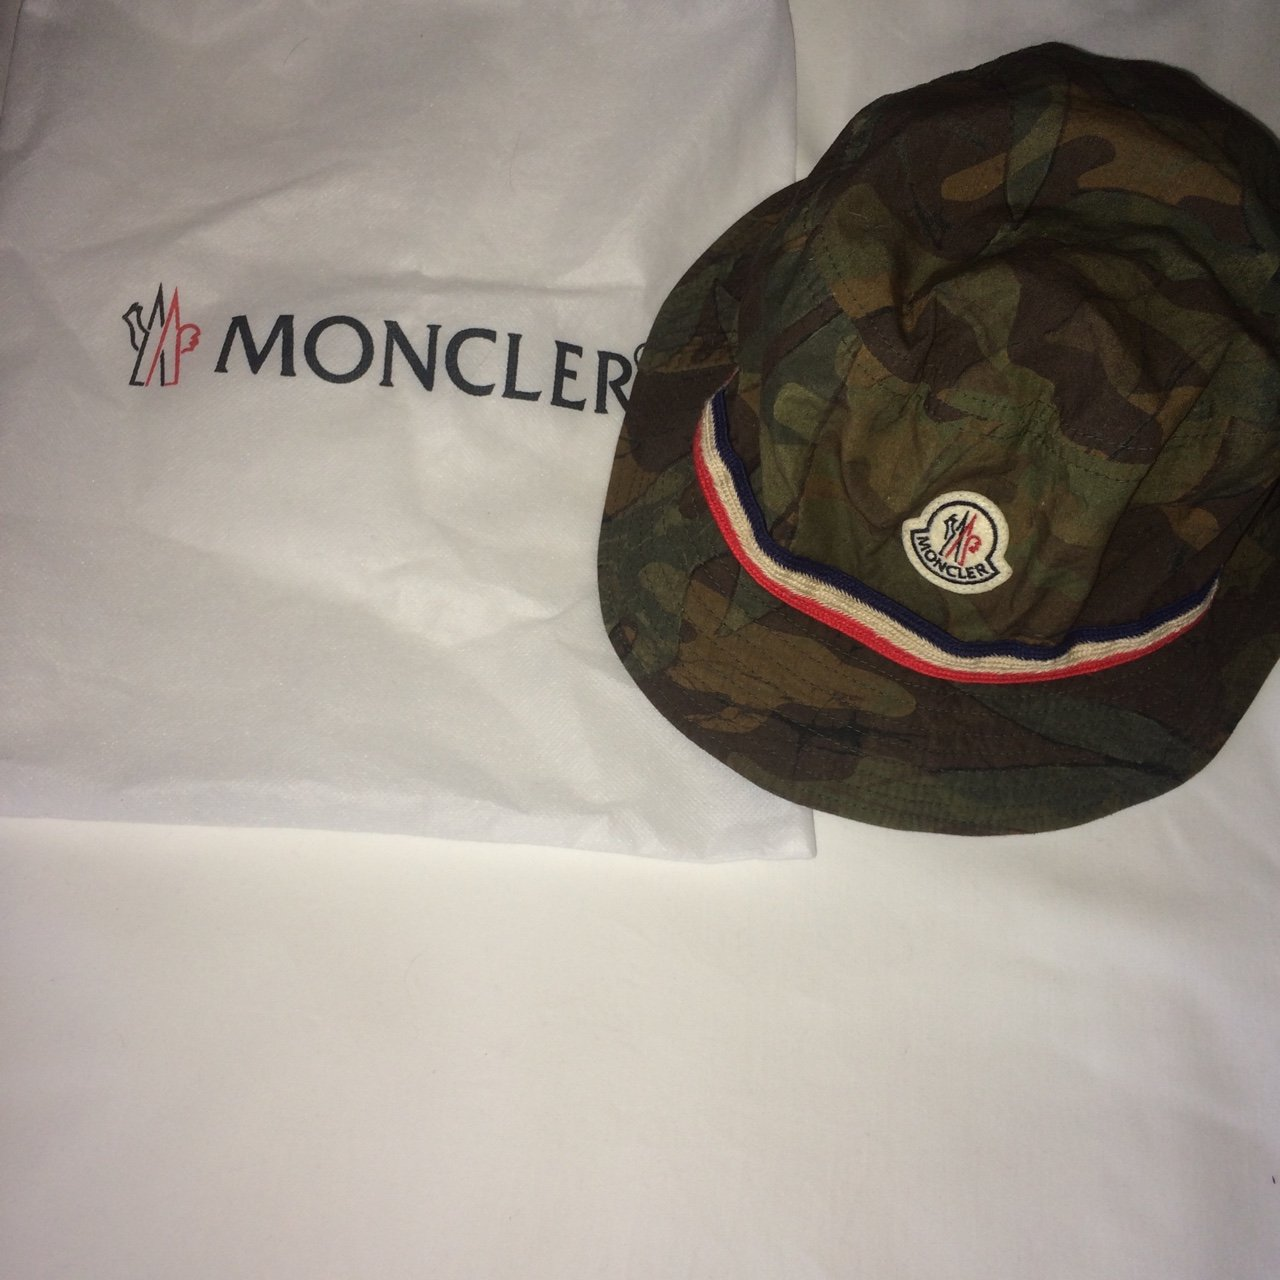 c008497a121 Moncler bucket hat 100% genuine. Only worn once. Bought for - Depop